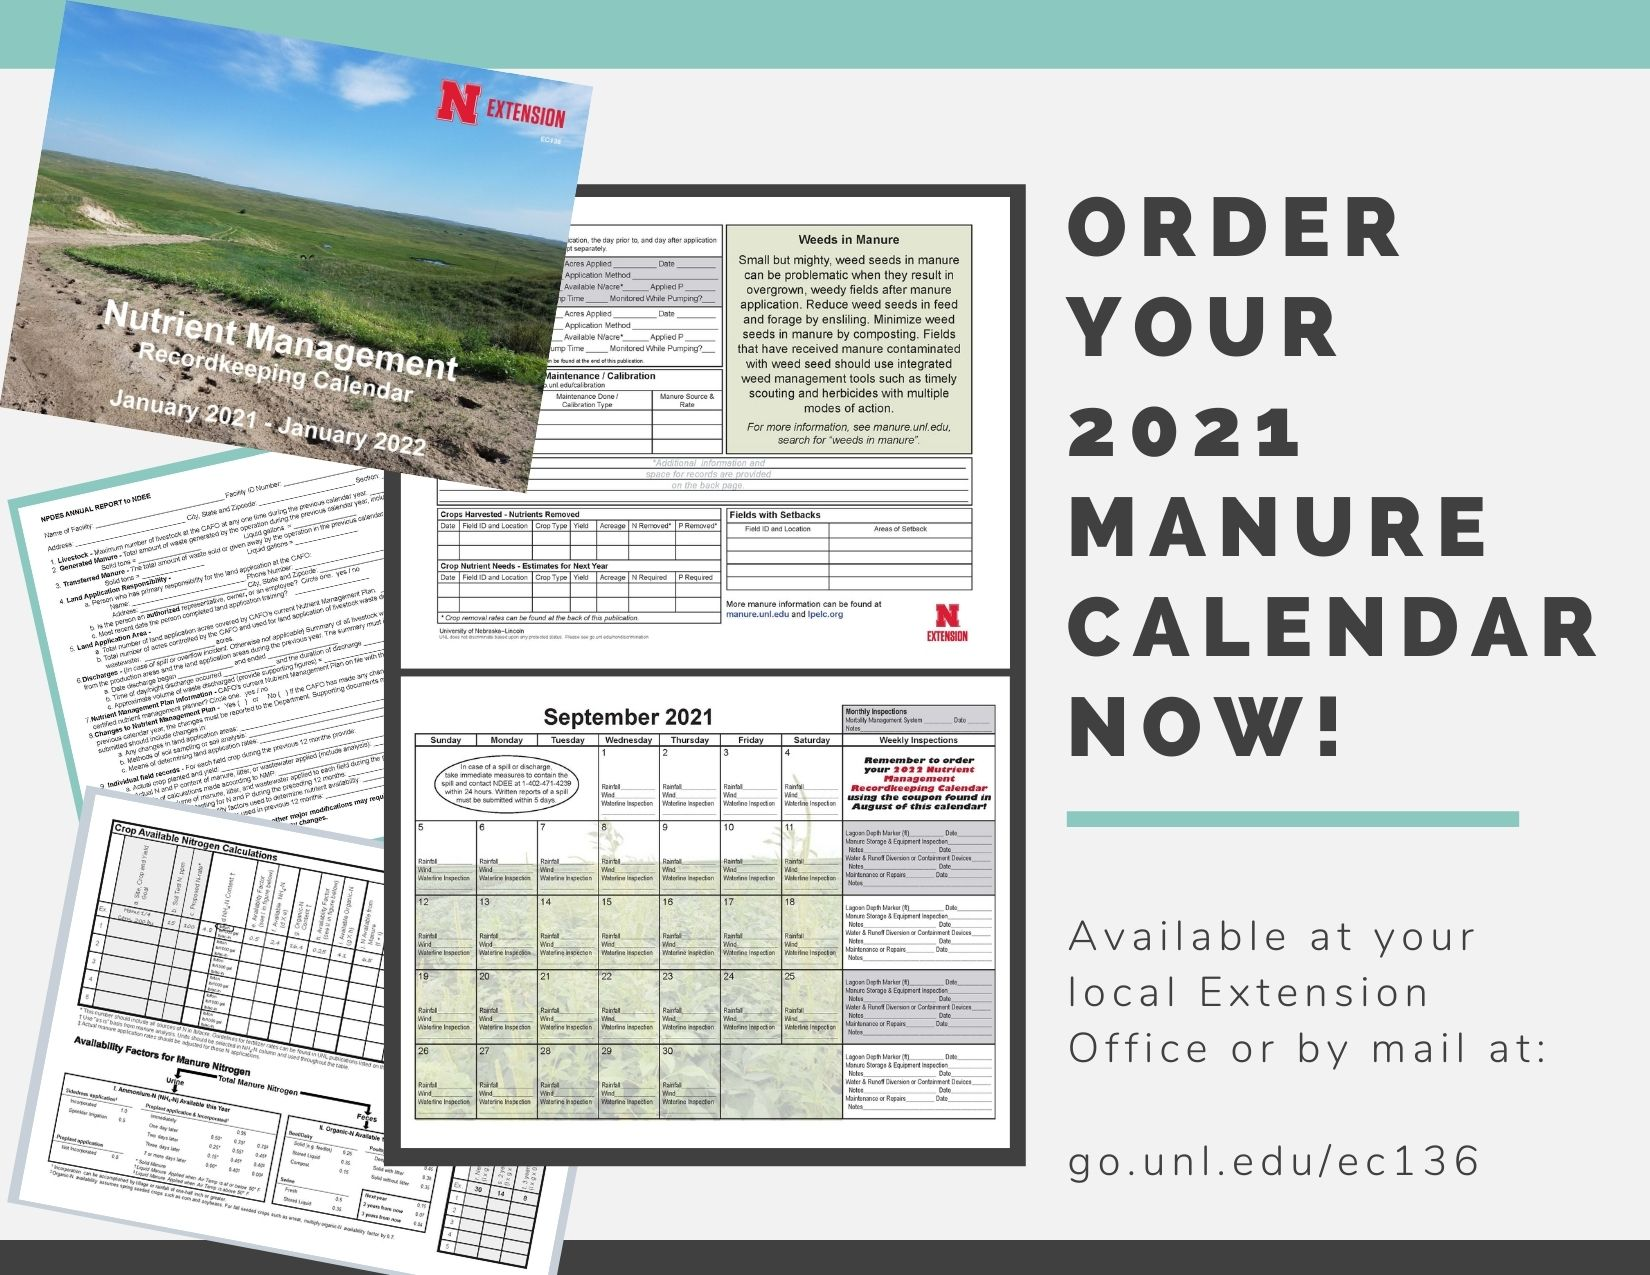 invitation to order your complementary 2021 manure calendar